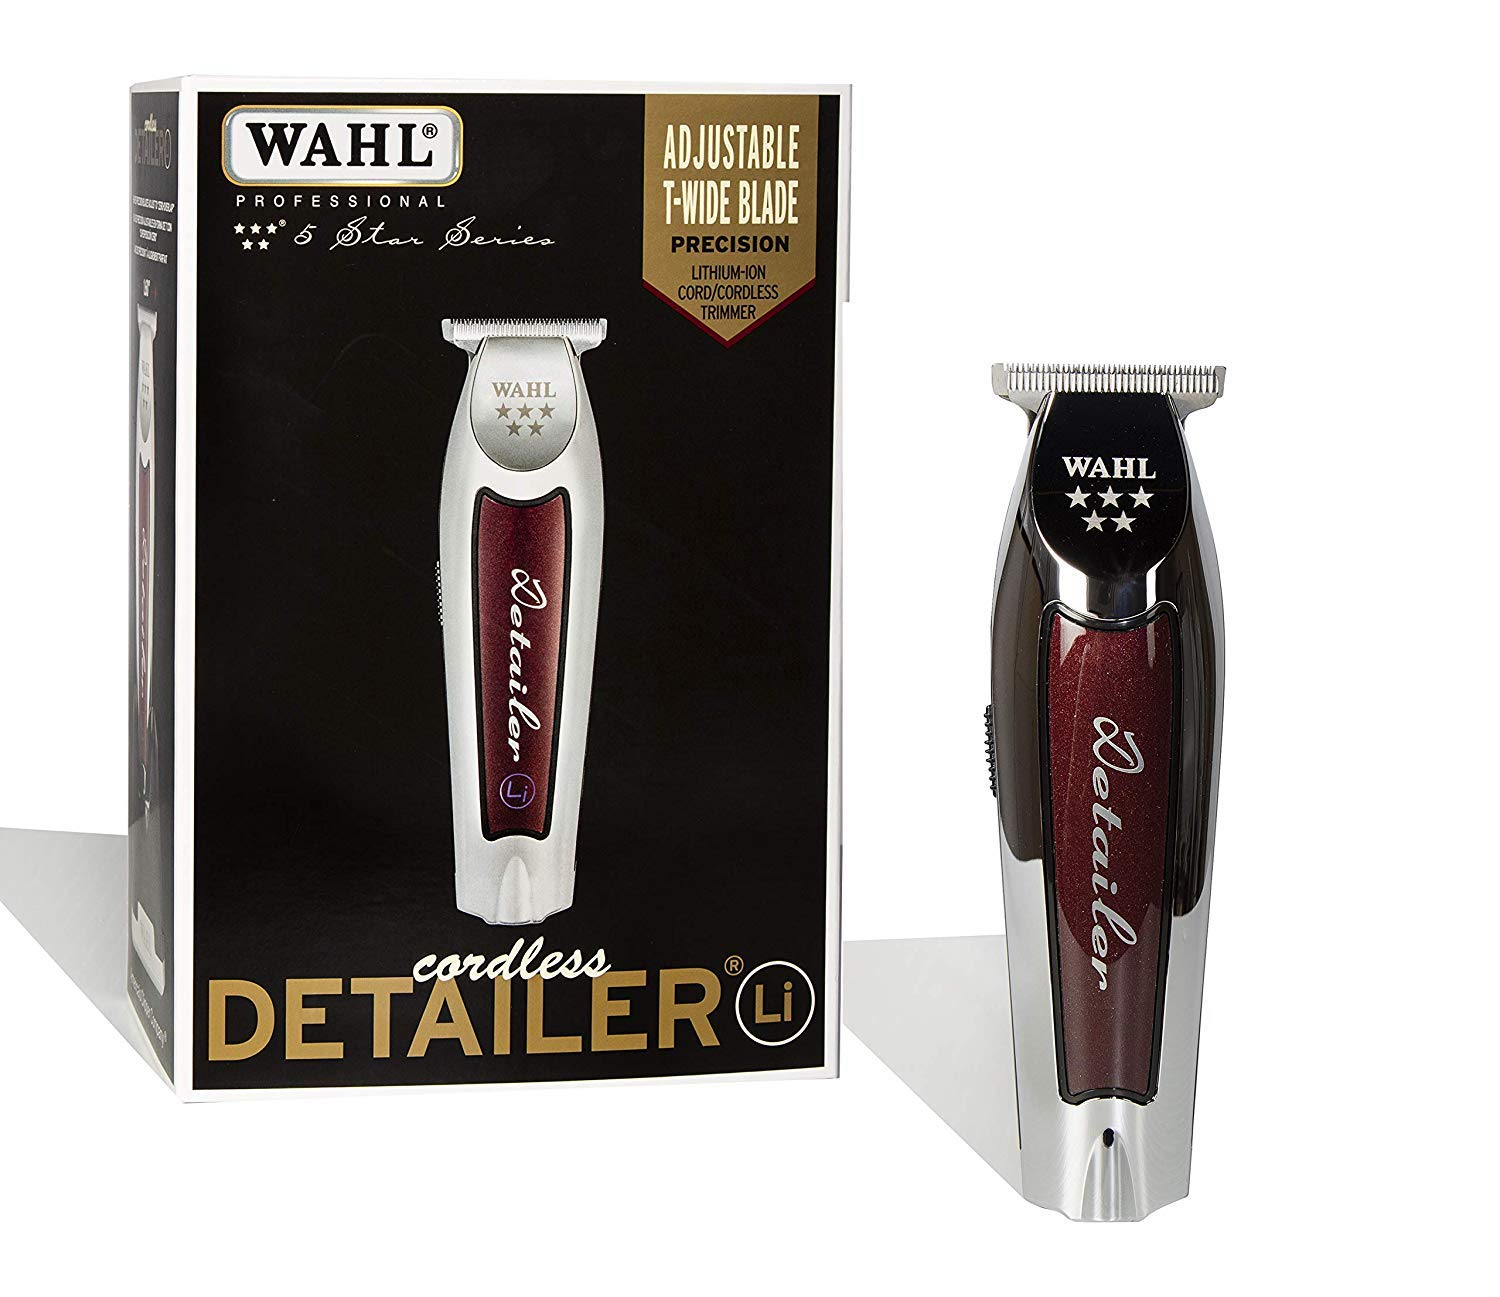 wahl professional - 71J6NUj2PJL - Wahl Professional 5-Star Series Lithium-Ion Cord/Cordless Detailer Li #8171 Ultra Close Trim from the Line Loved by Barbers- 100 Minute Run Time